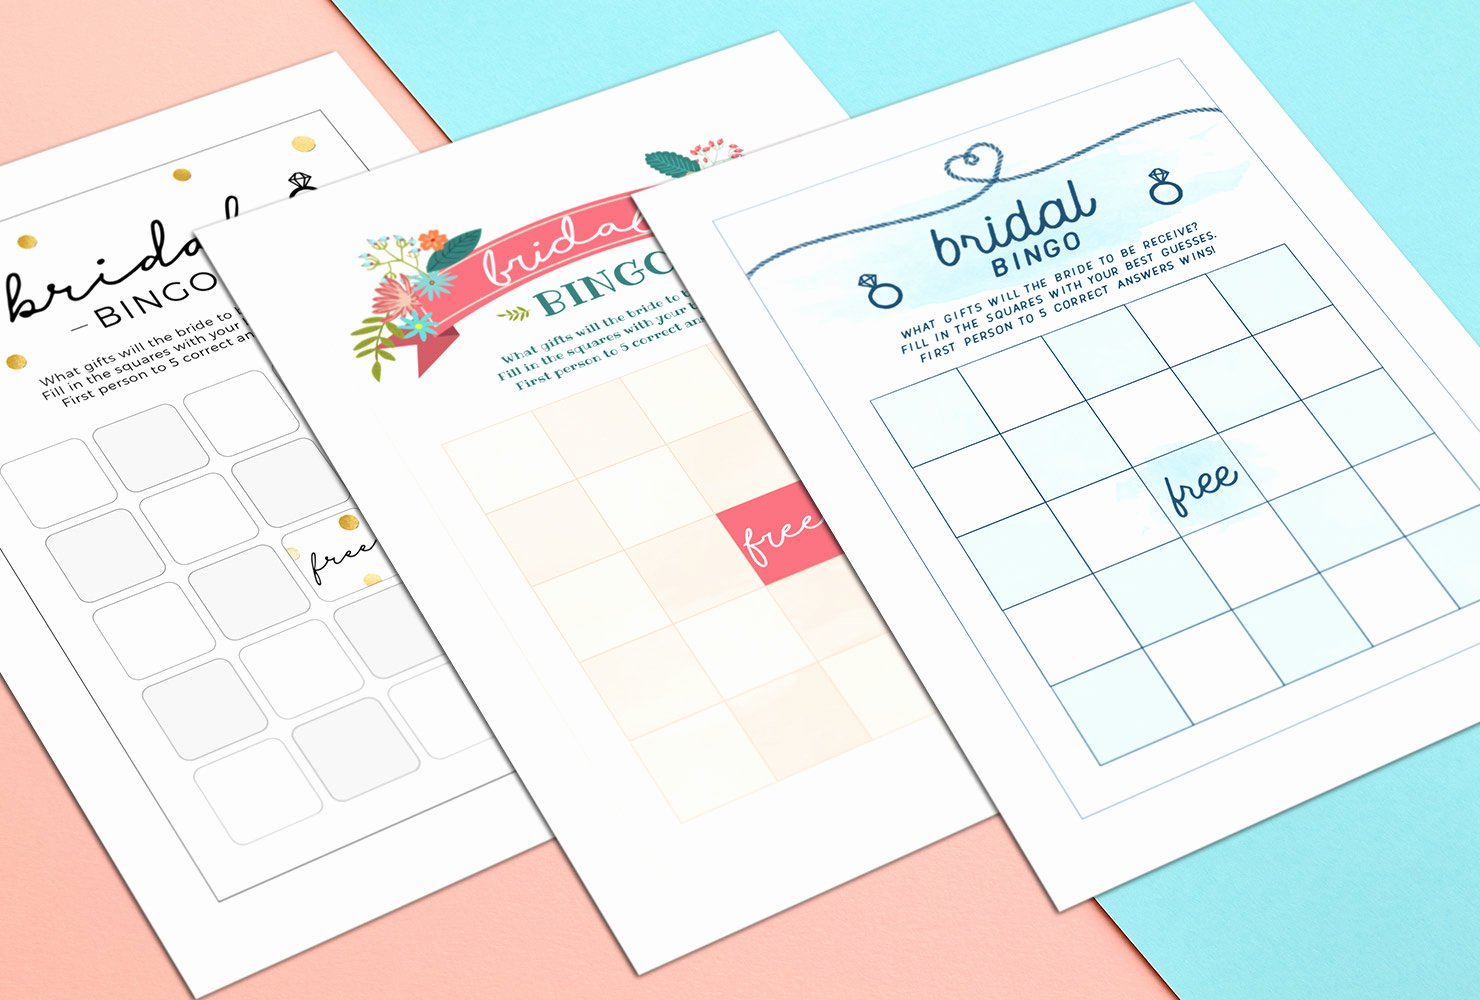 Bridal Shower Bingo Template Inspirational How to Play Bridal Shower Bingo with Printables